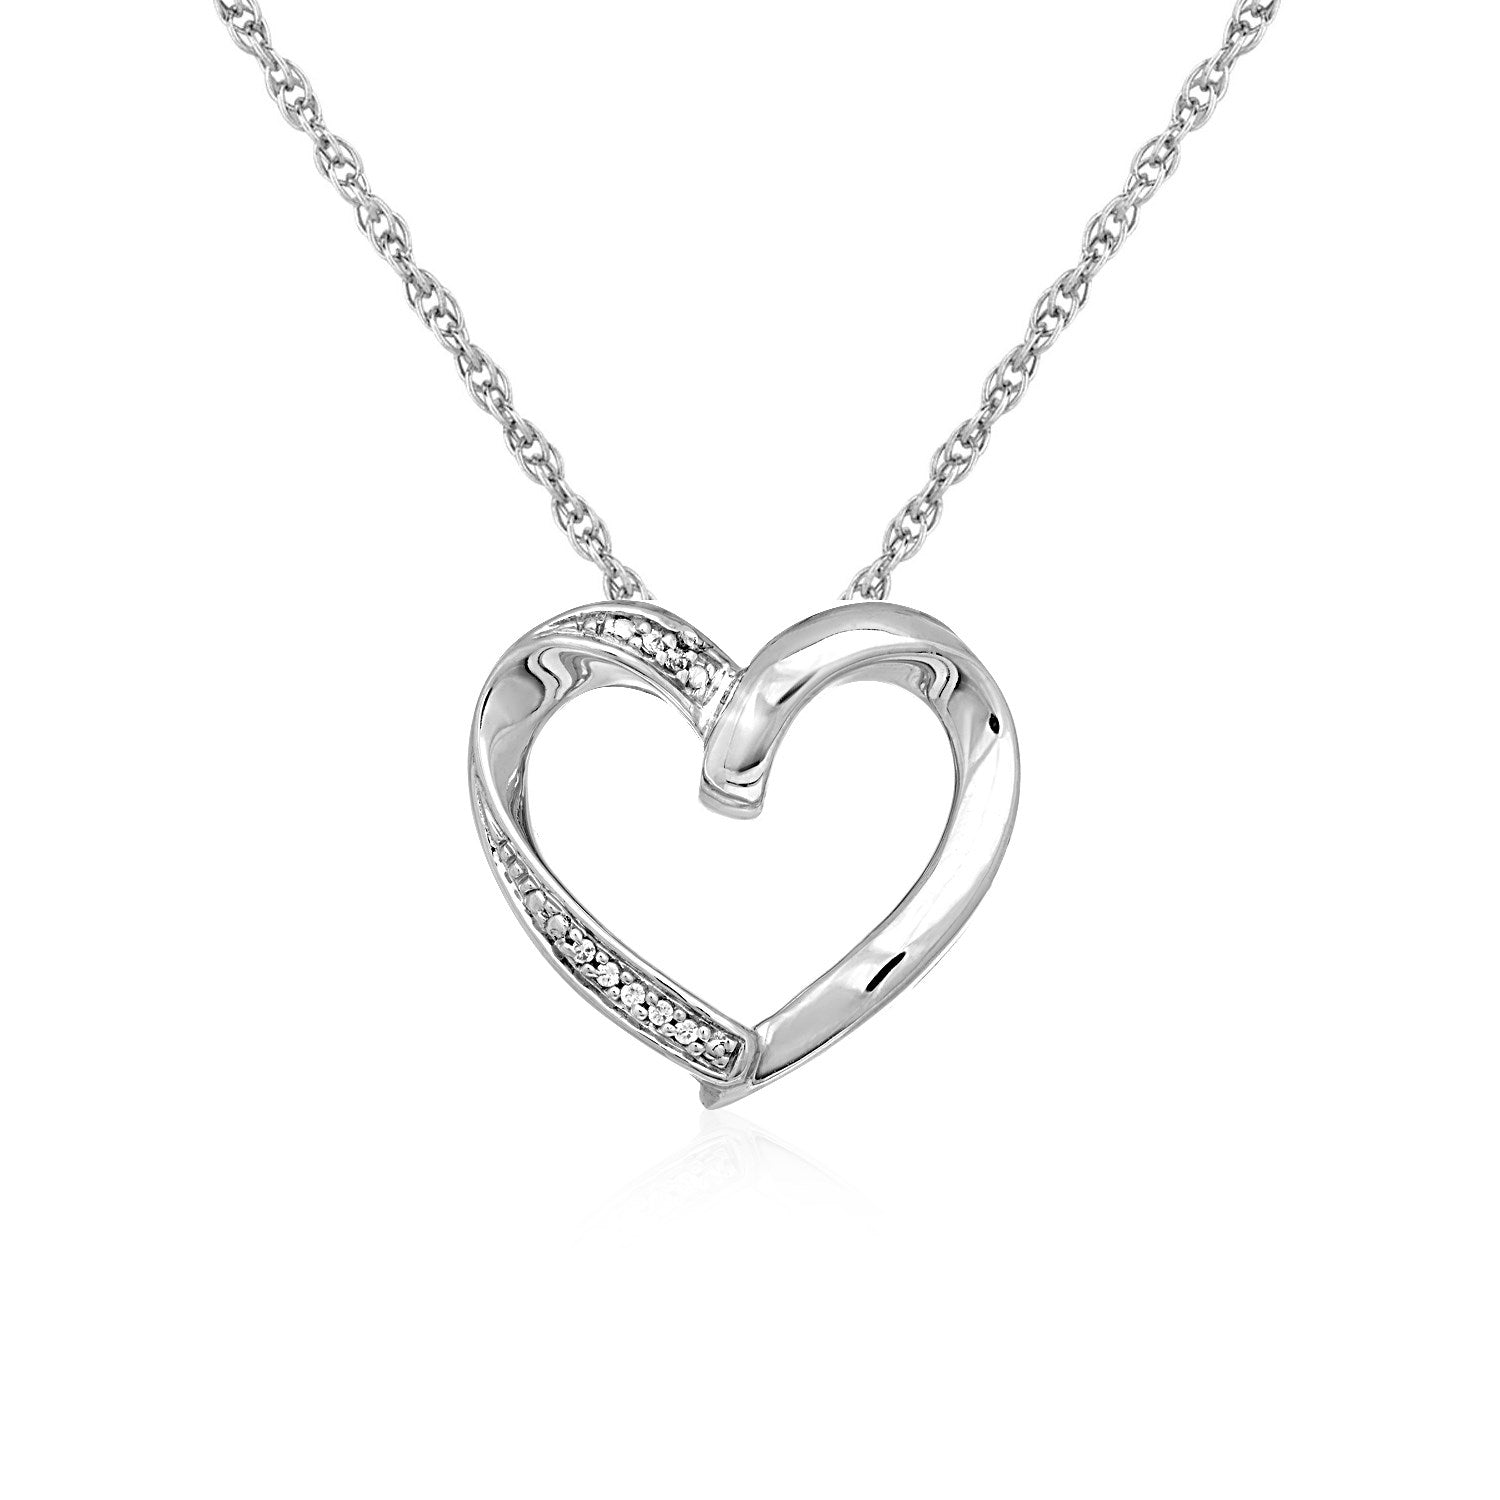 Open Heart Pendant with Diamonds in Sterling Silver